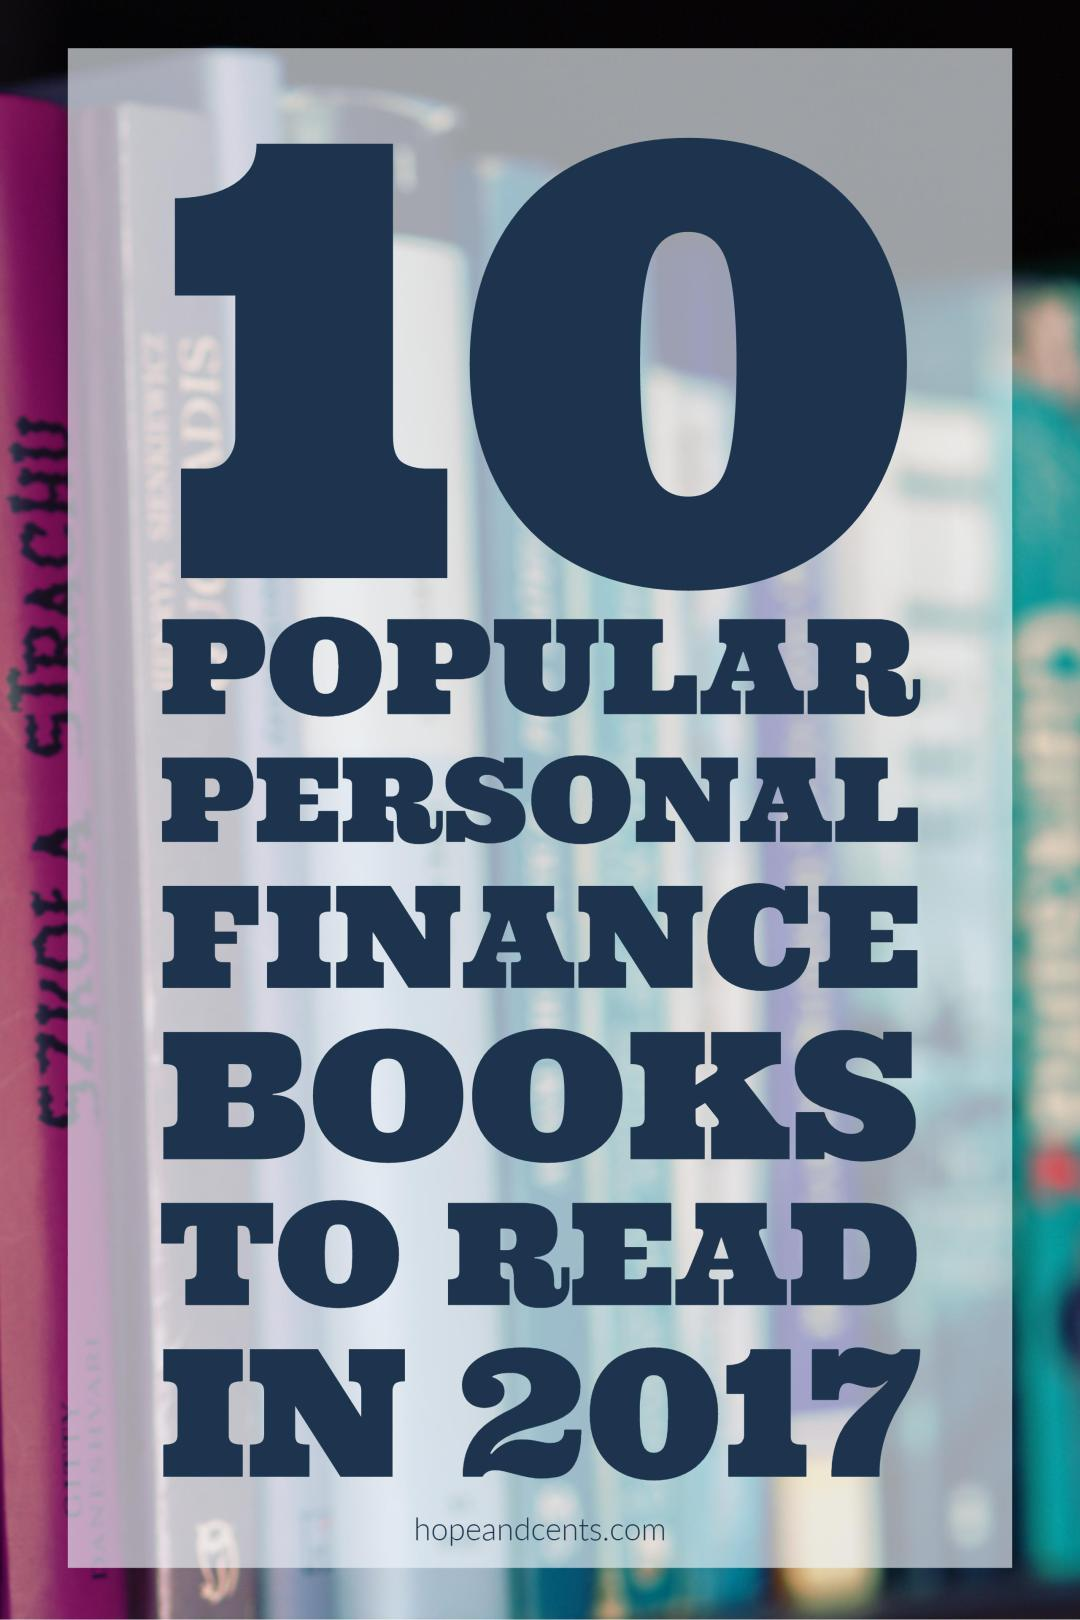 Are you looking for personal finance books to read? These best-selling money books from Amazon cover everything from budgeting to investing.